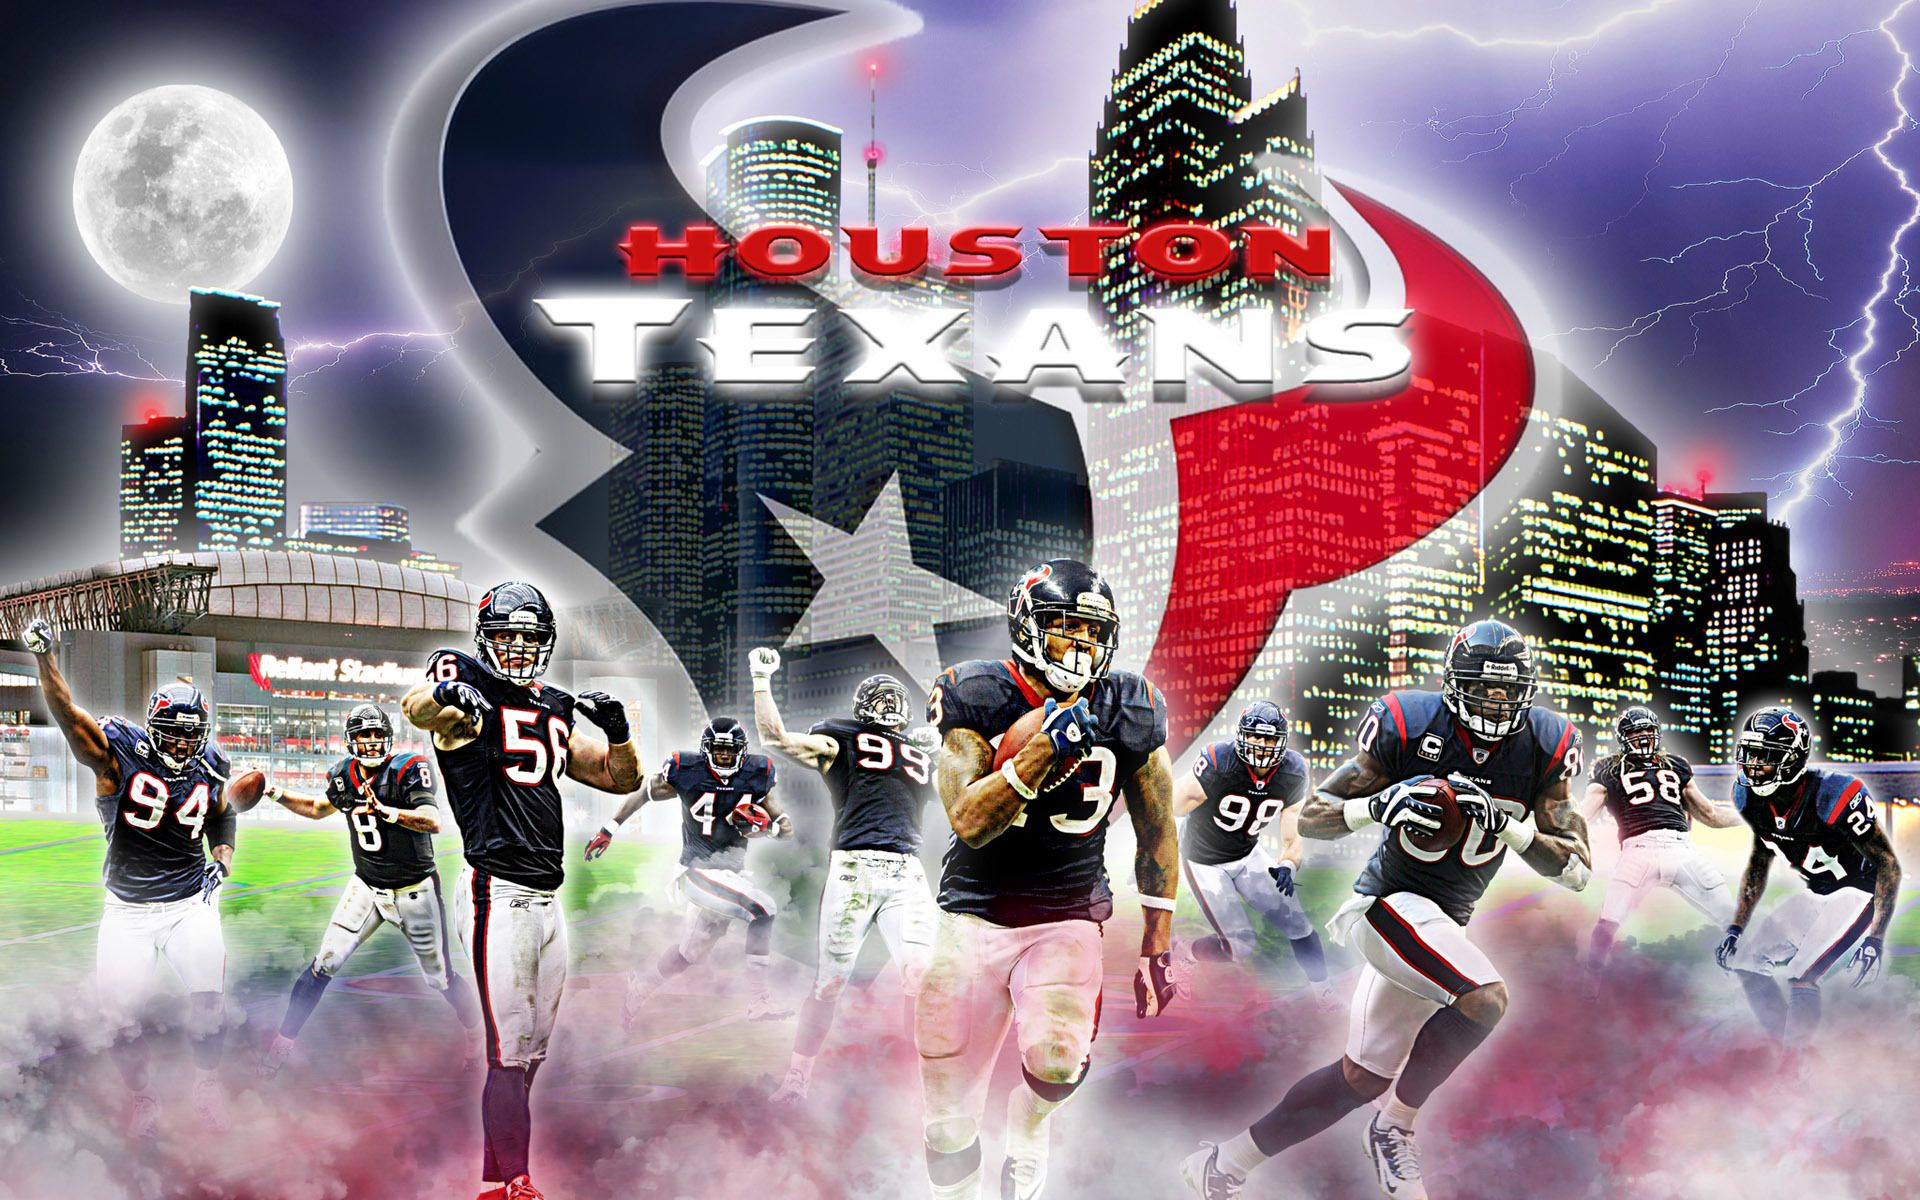 Houston Texans Wallpapers Full HD wallpaper search